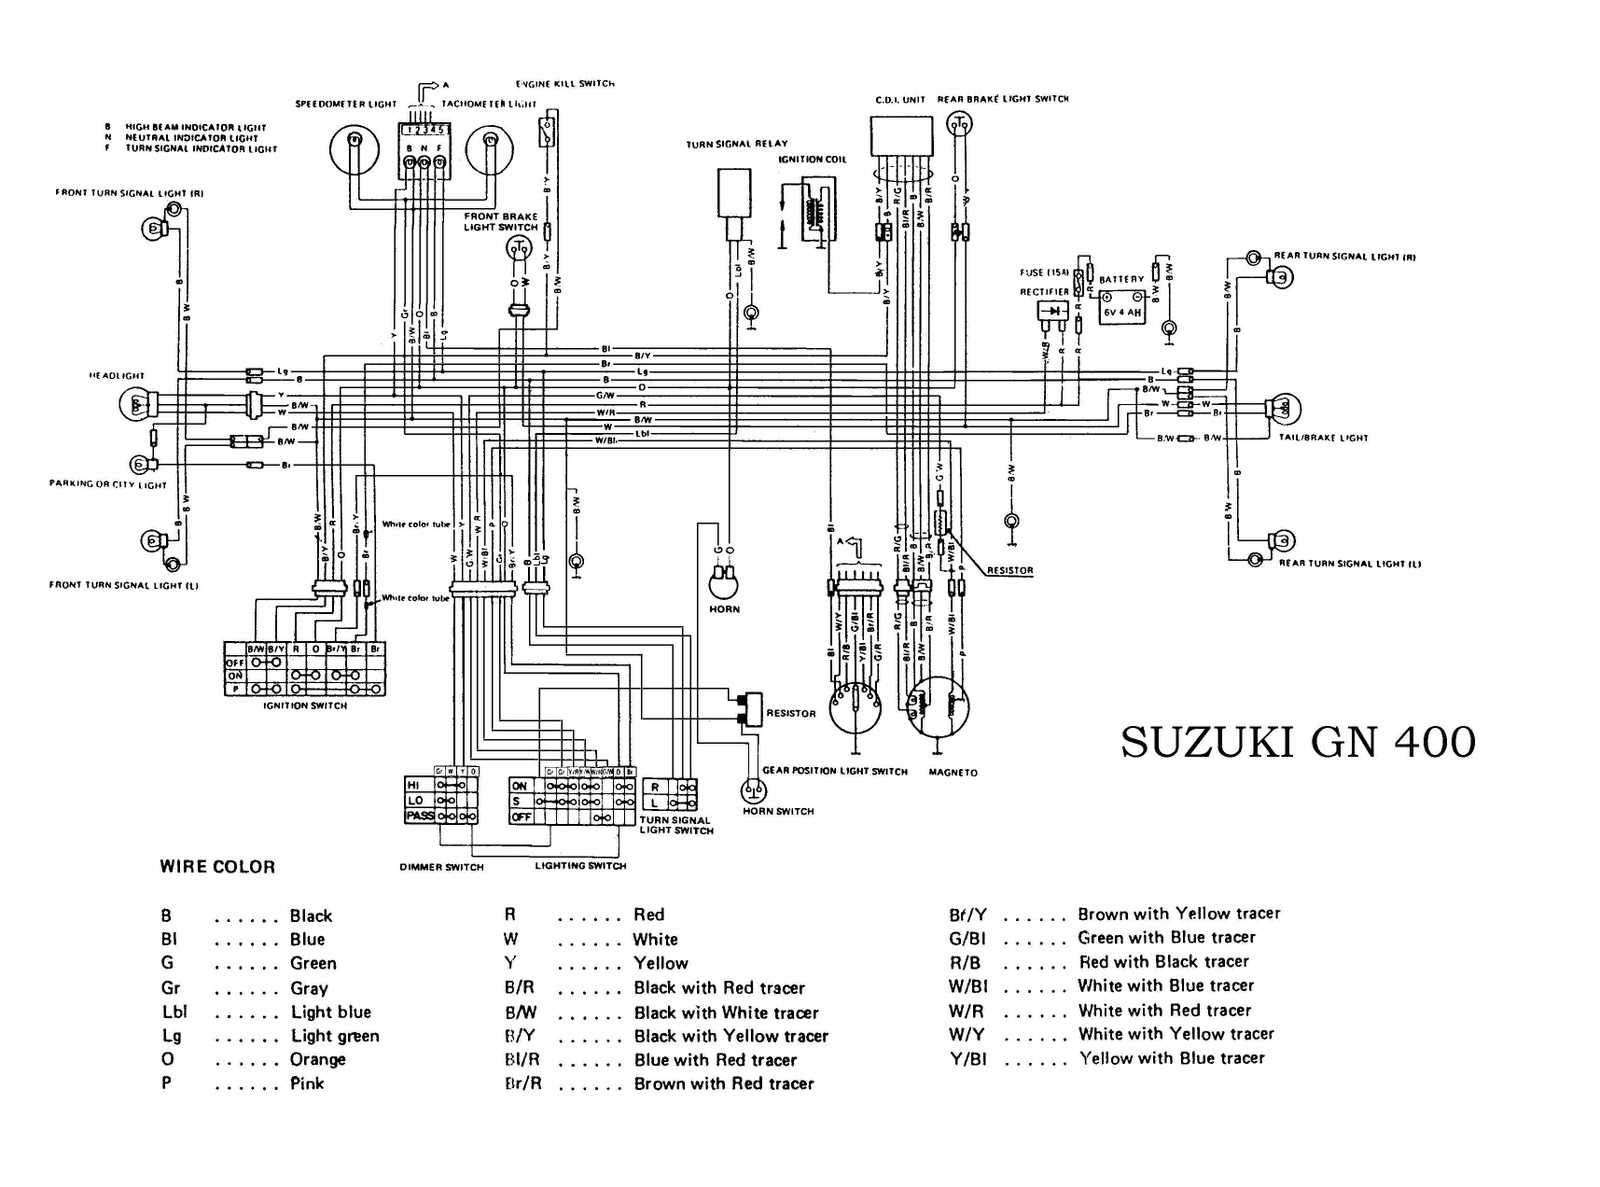 Suzuki+GN400+Electrical+Wiring+Diagram e67 wiring diagram smart car diagrams \u2022 wiring diagrams j squared co 6l80e trans modules wiring diagram at gsmx.co